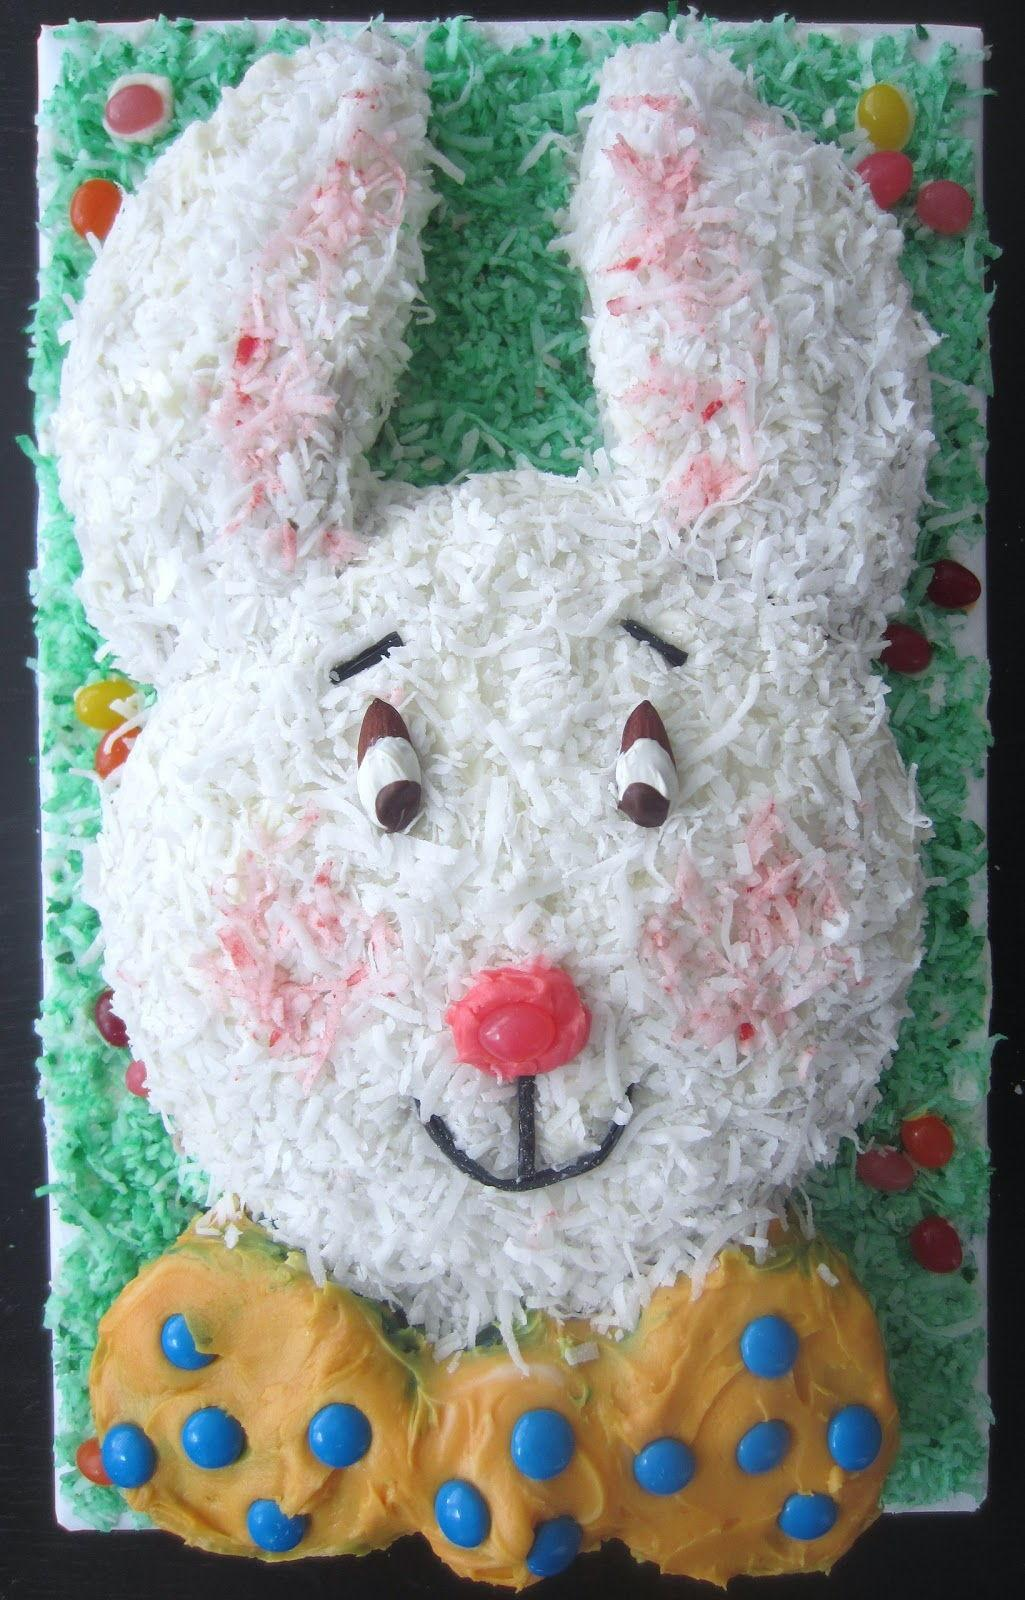 Creative Diy Easter Bunny Cake Recipes